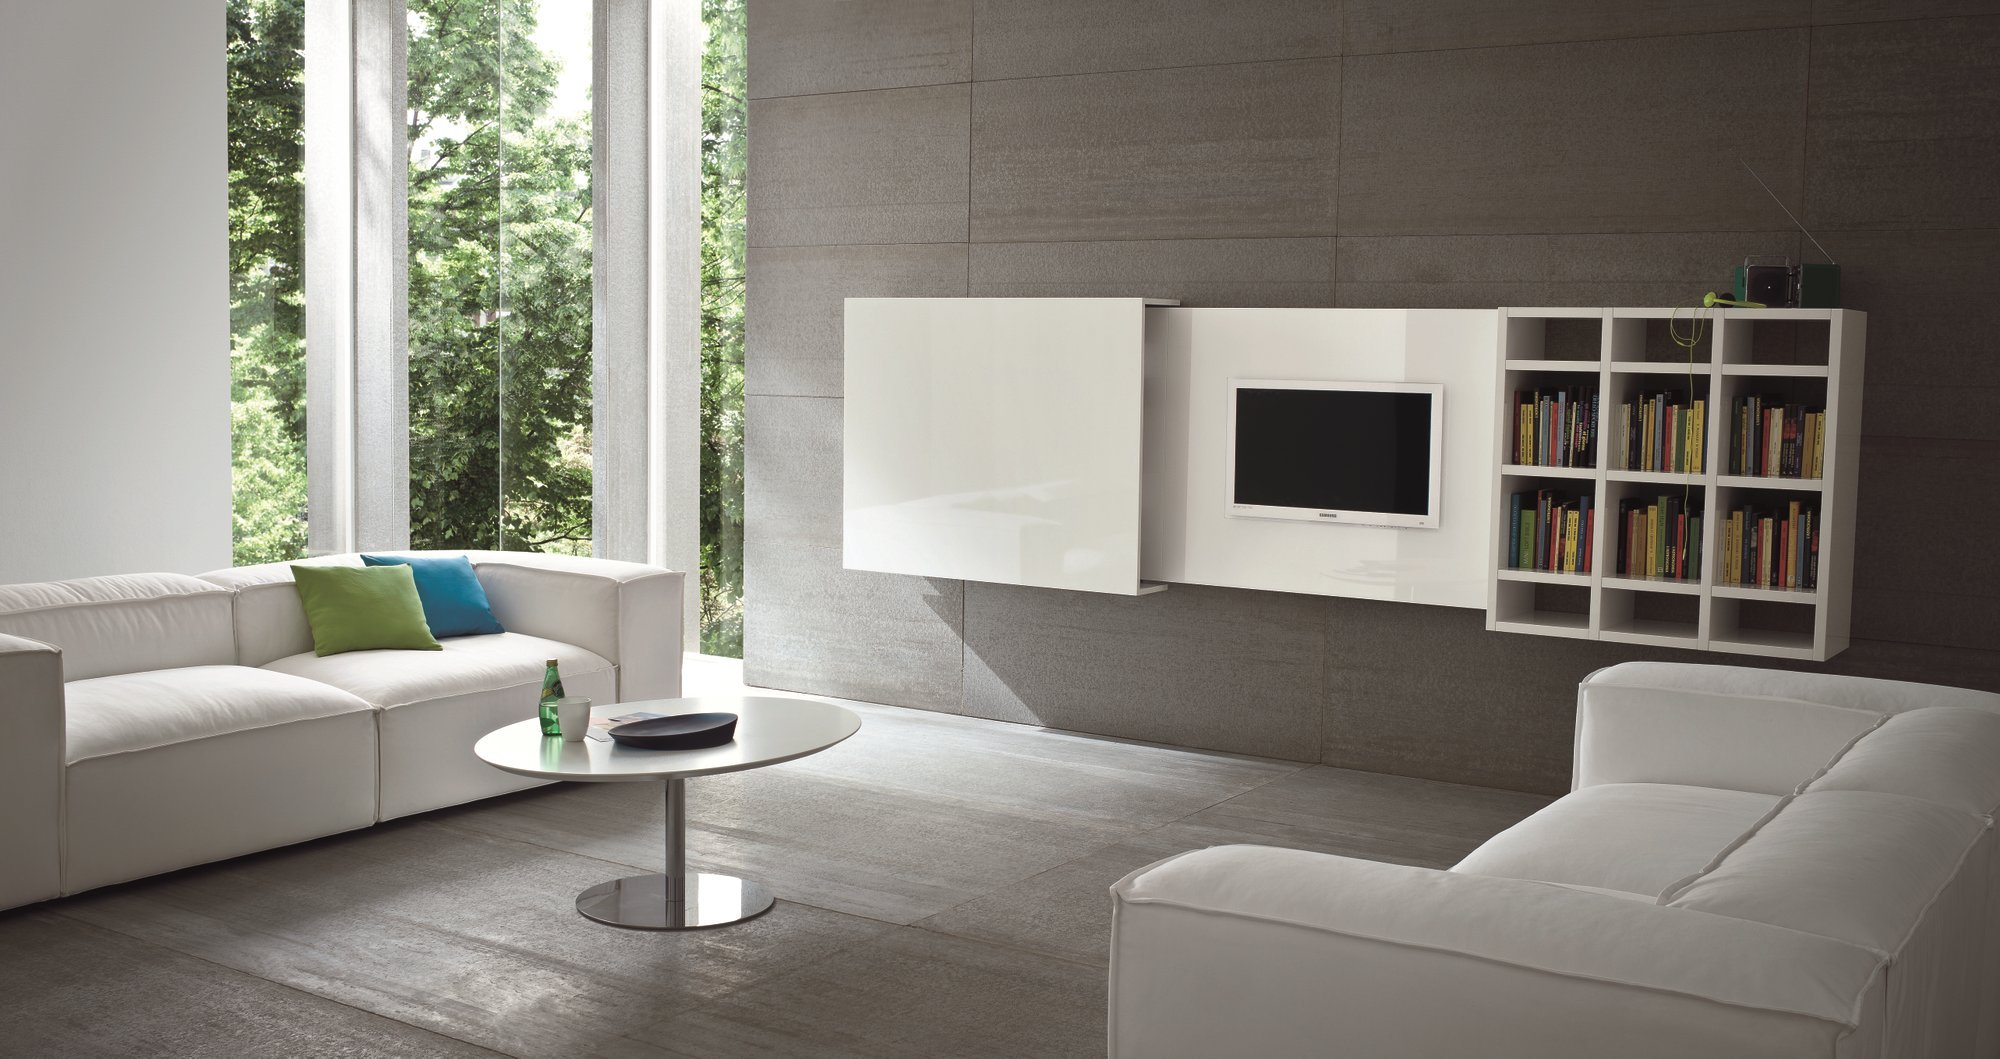 Mobile TV sospeso a scomparsa SLIM 10 by Dall'Agnese design Imago ...